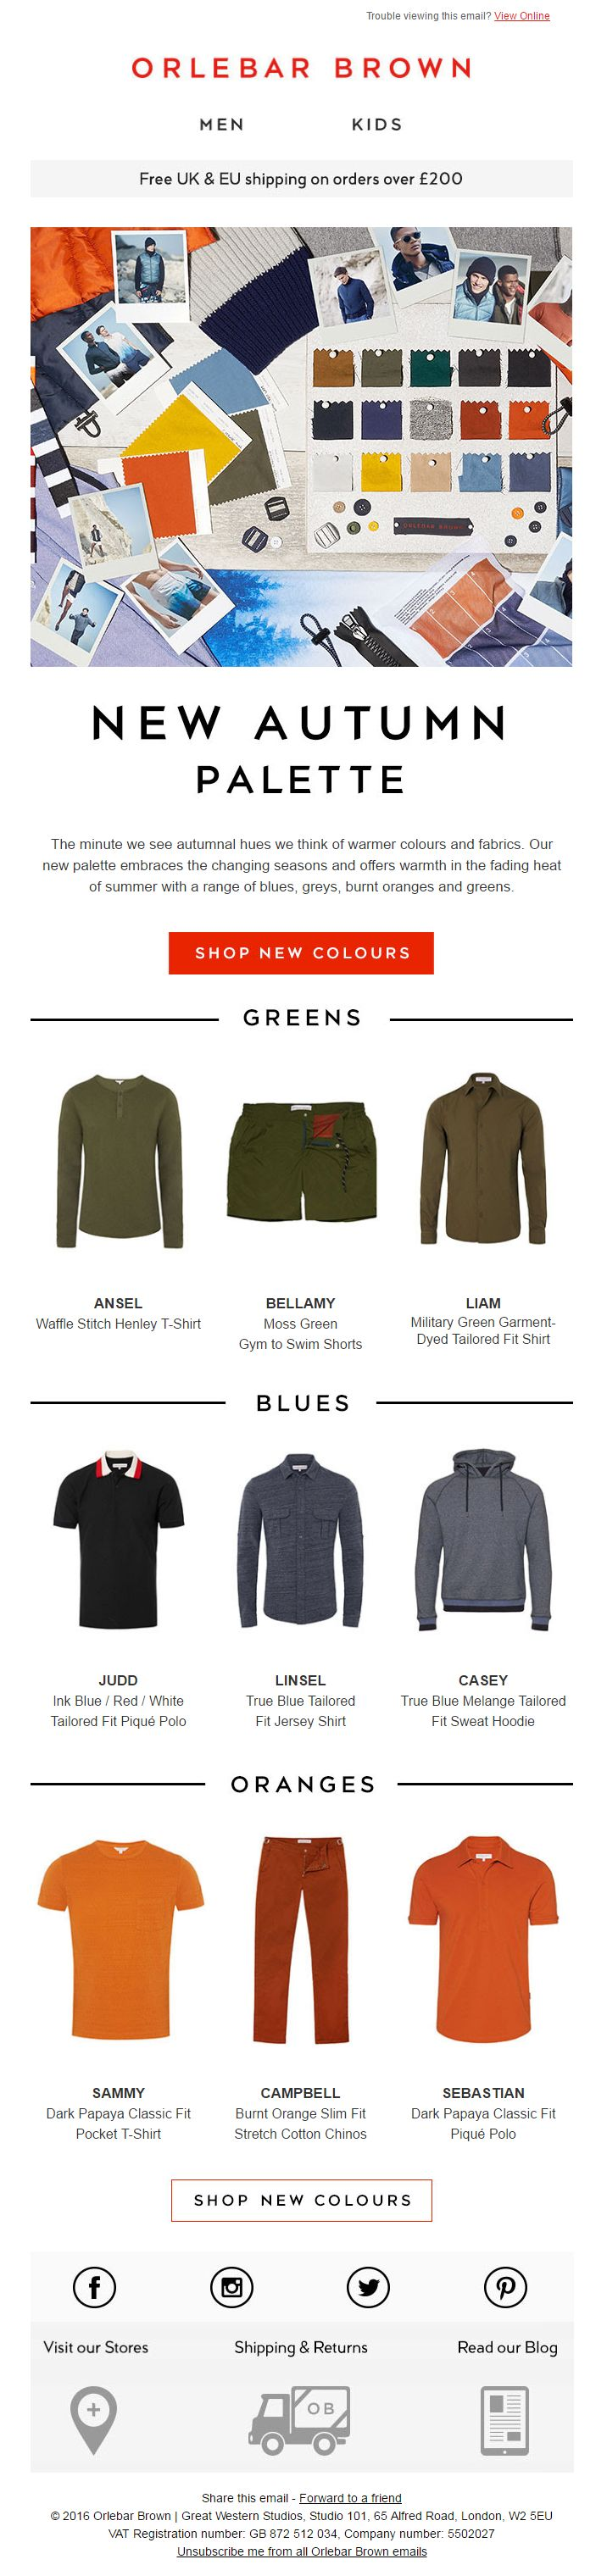 Autumn Colour Product Recommendations from Orlebar Brown #EmailMarketing #Email #Marketing #Fashion #Colour #Color #Product #Recommendations